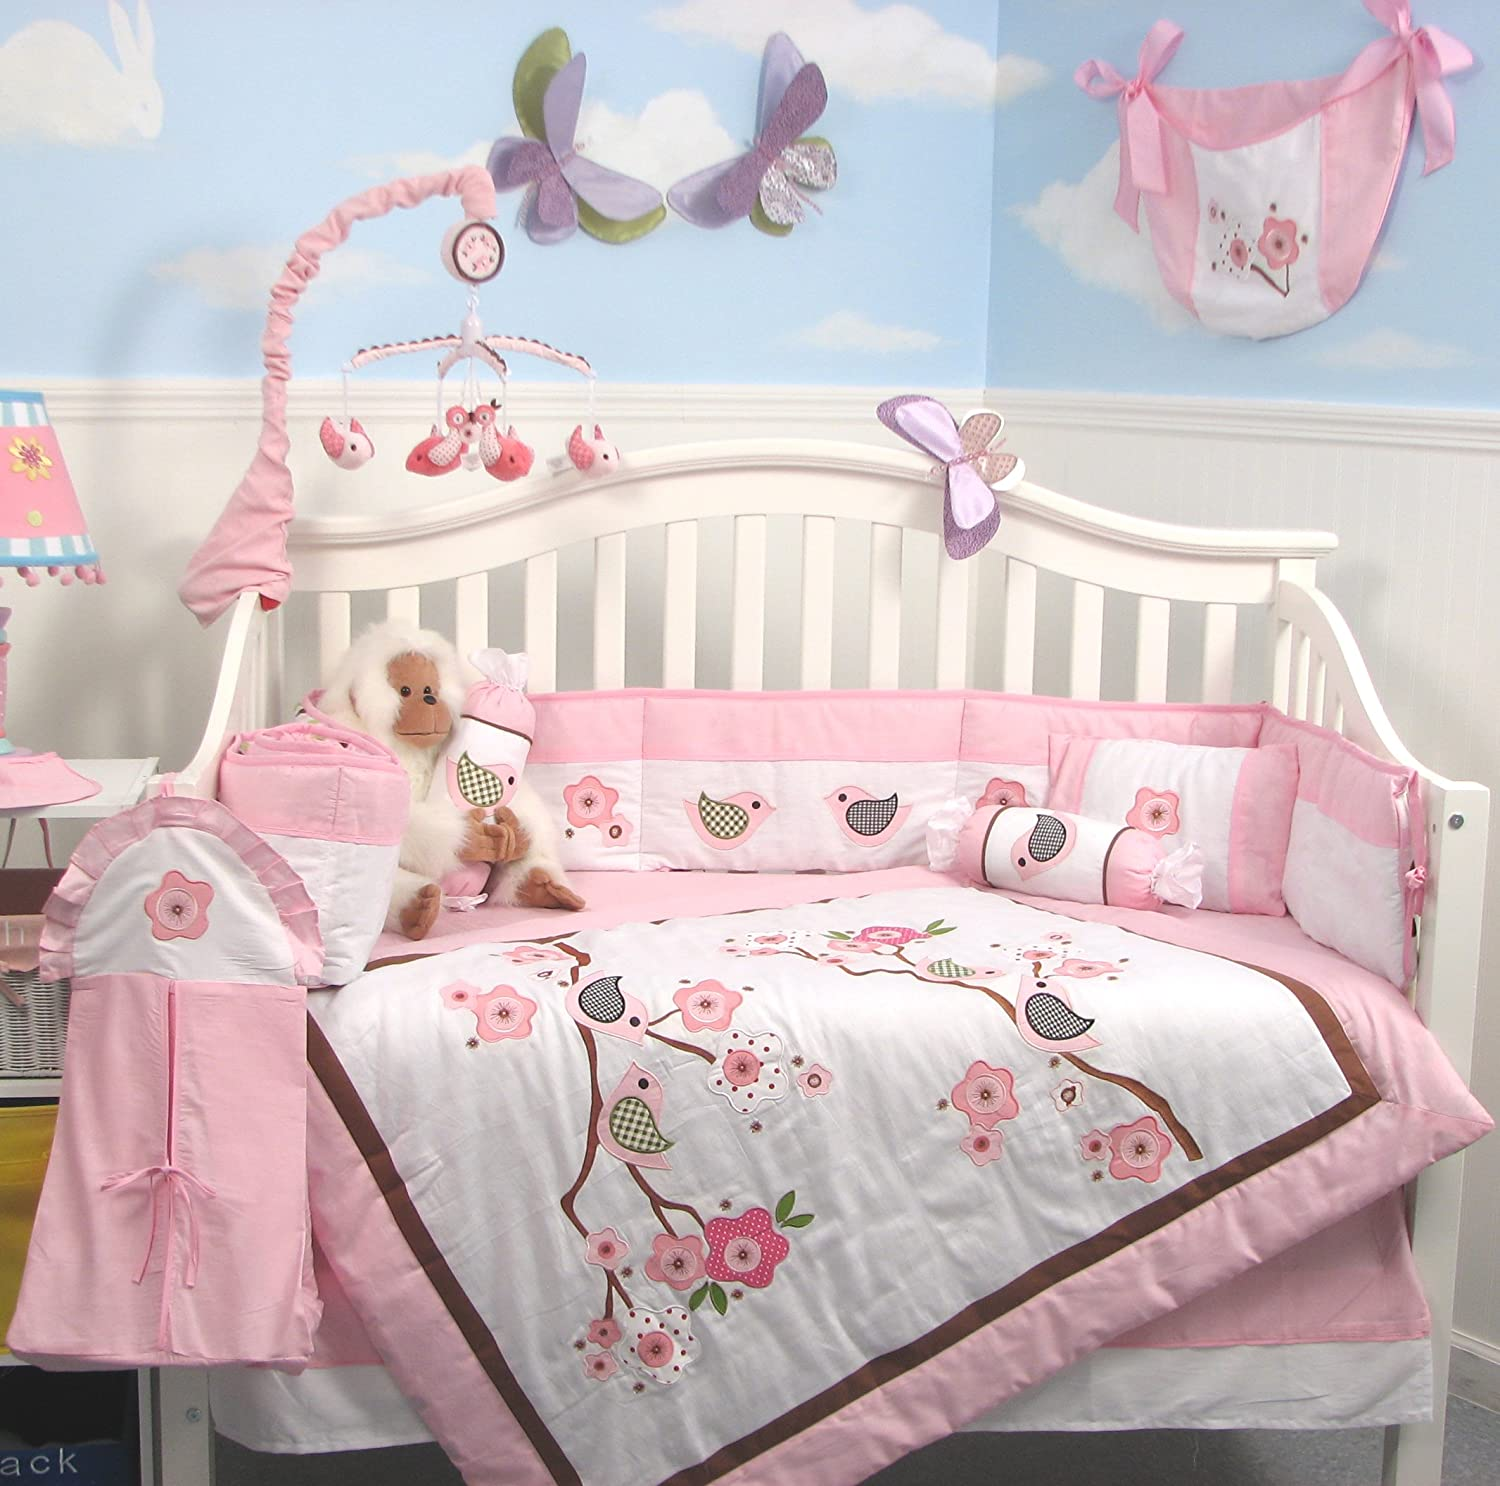 sets crib bedding ivory products girl cassandra bed nursery